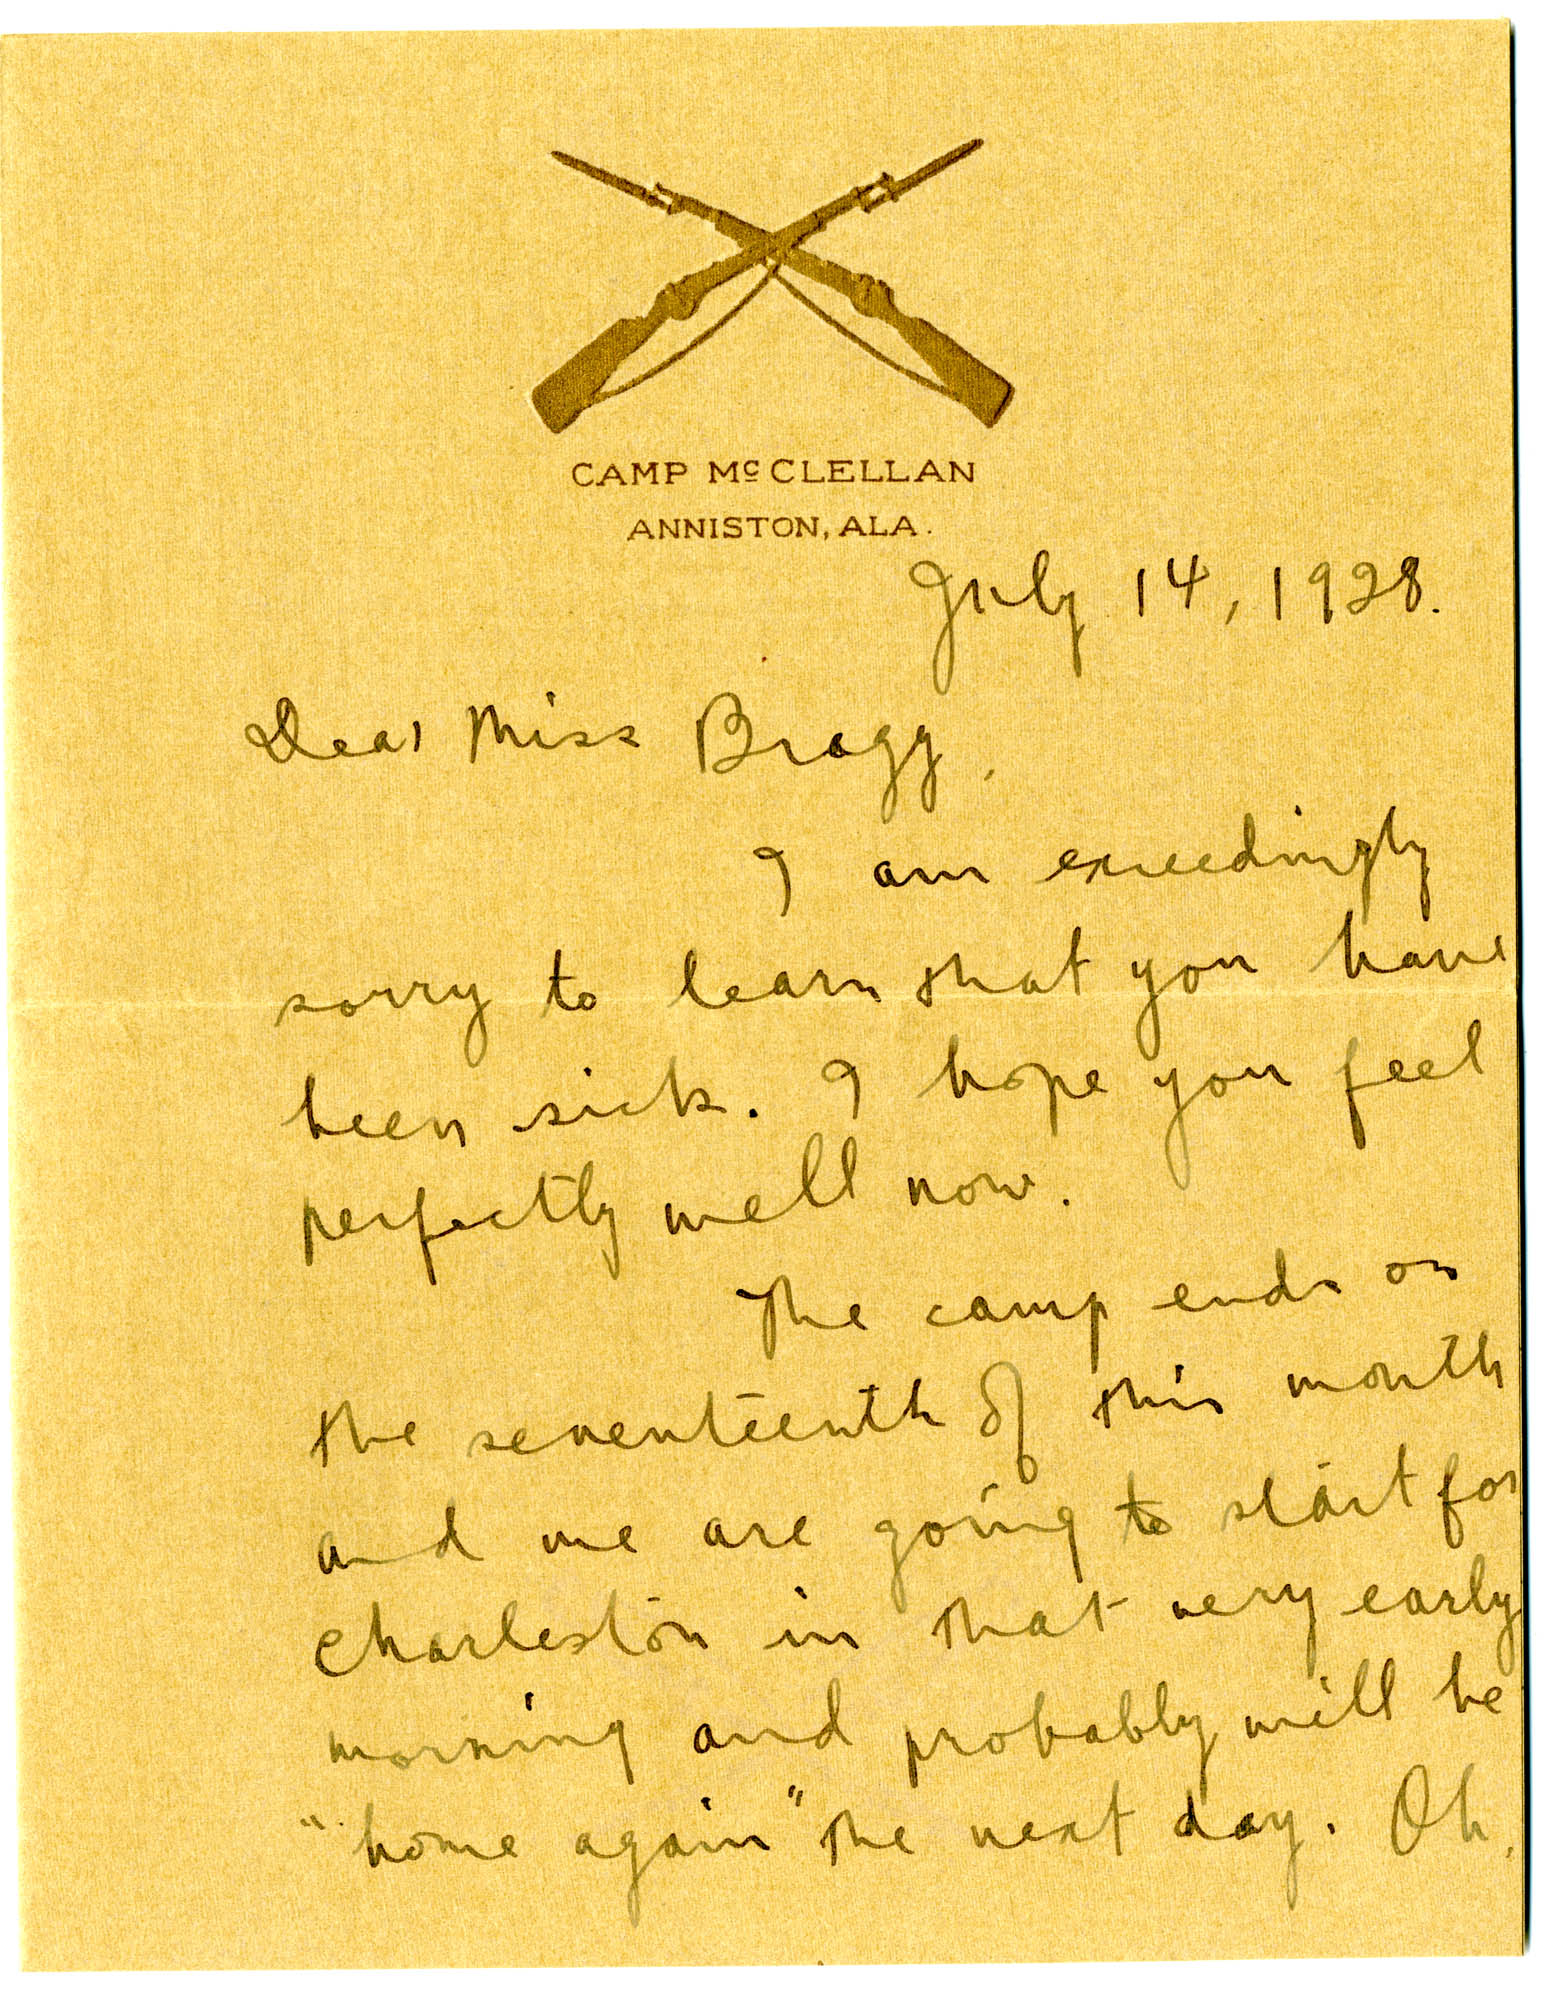 Letter from C.C. Tseng to Laura M. Bragg, July 14, 1928